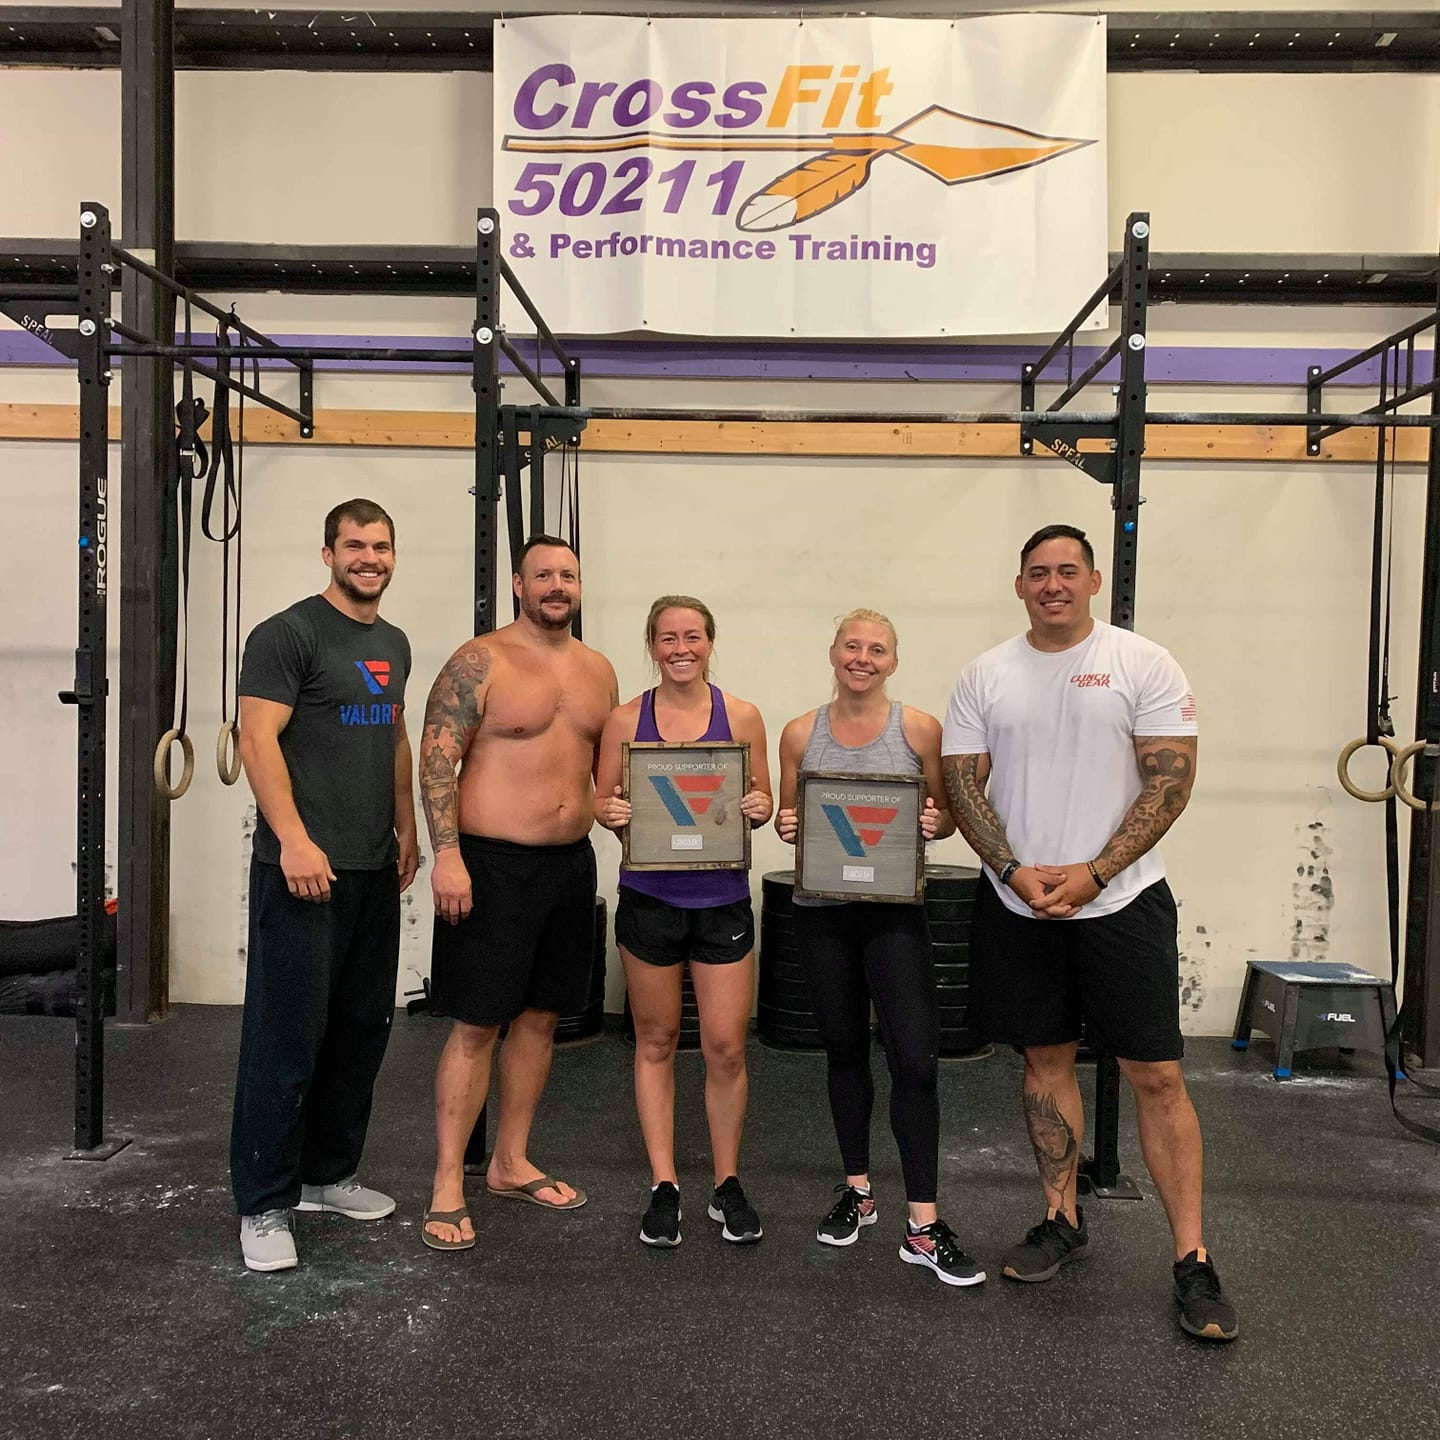 Yesterday morning we were able to say thank you to Natalie and Tracy for their donations to @ValorFit . They both extended their hand by purchasing our apparel and then offered to be donors, and for that we are grateful. They both get to see what takes place with veterans inside of CrossFit 50211, and we were able to share a little more about what takes place outside of the gym to help put veterans and their families in a better position. We are truly grateful for everyone who donates to help us with our mission. No one has to fight alone. Thank you to everyone who has supported us and continues to support us!